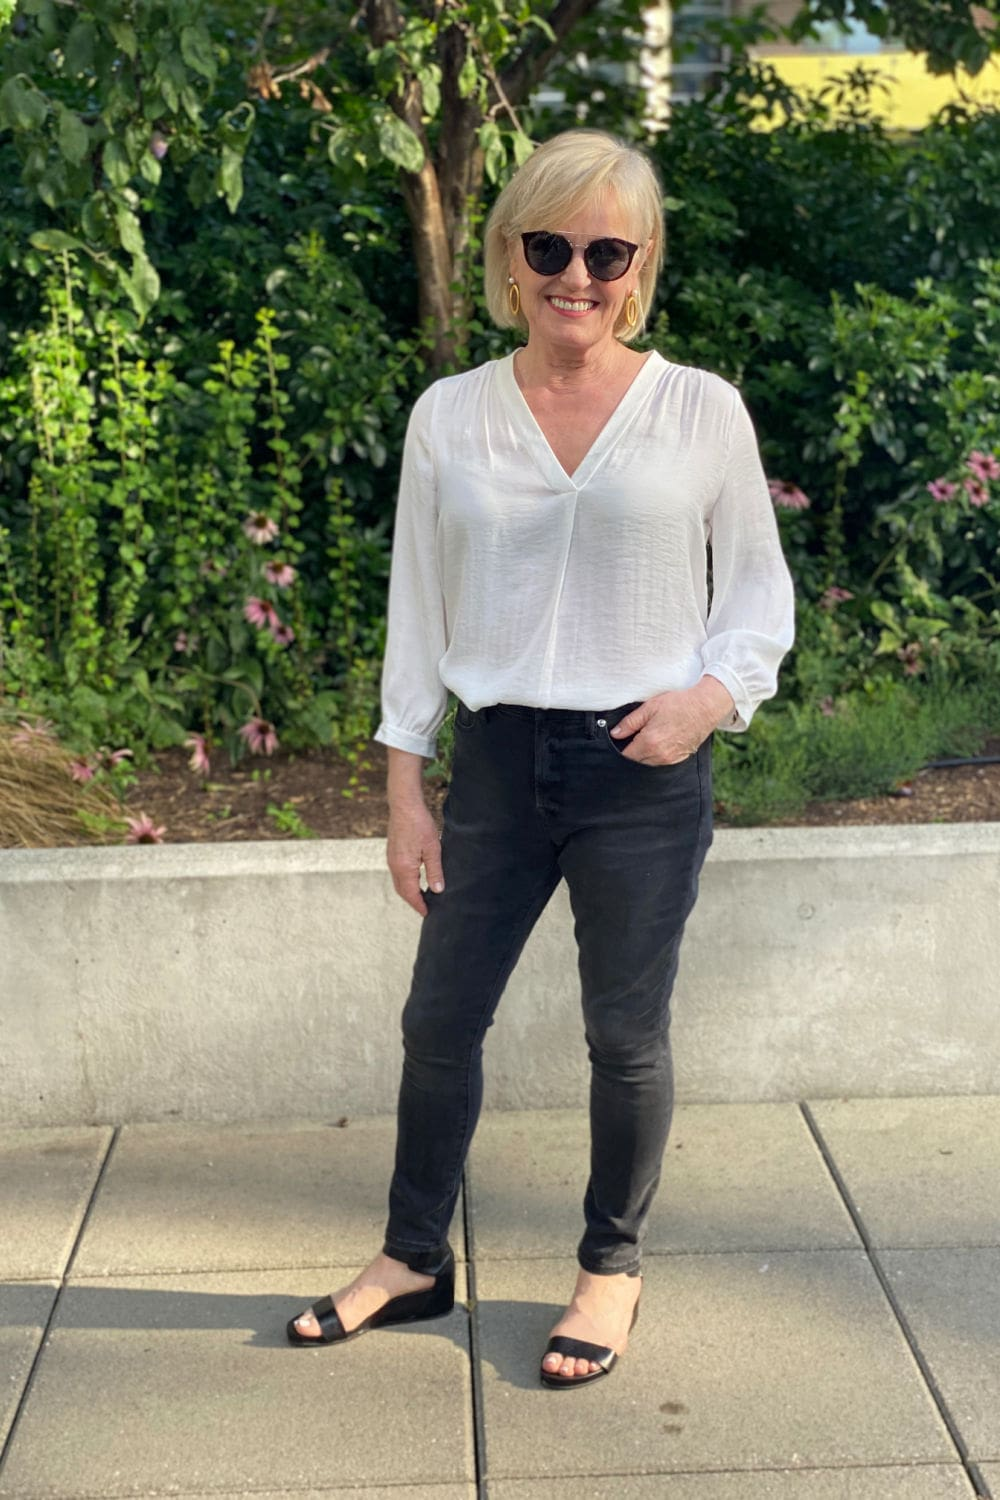 fashion blogger on A Well Styled Life wearing Vince Camuto blouse